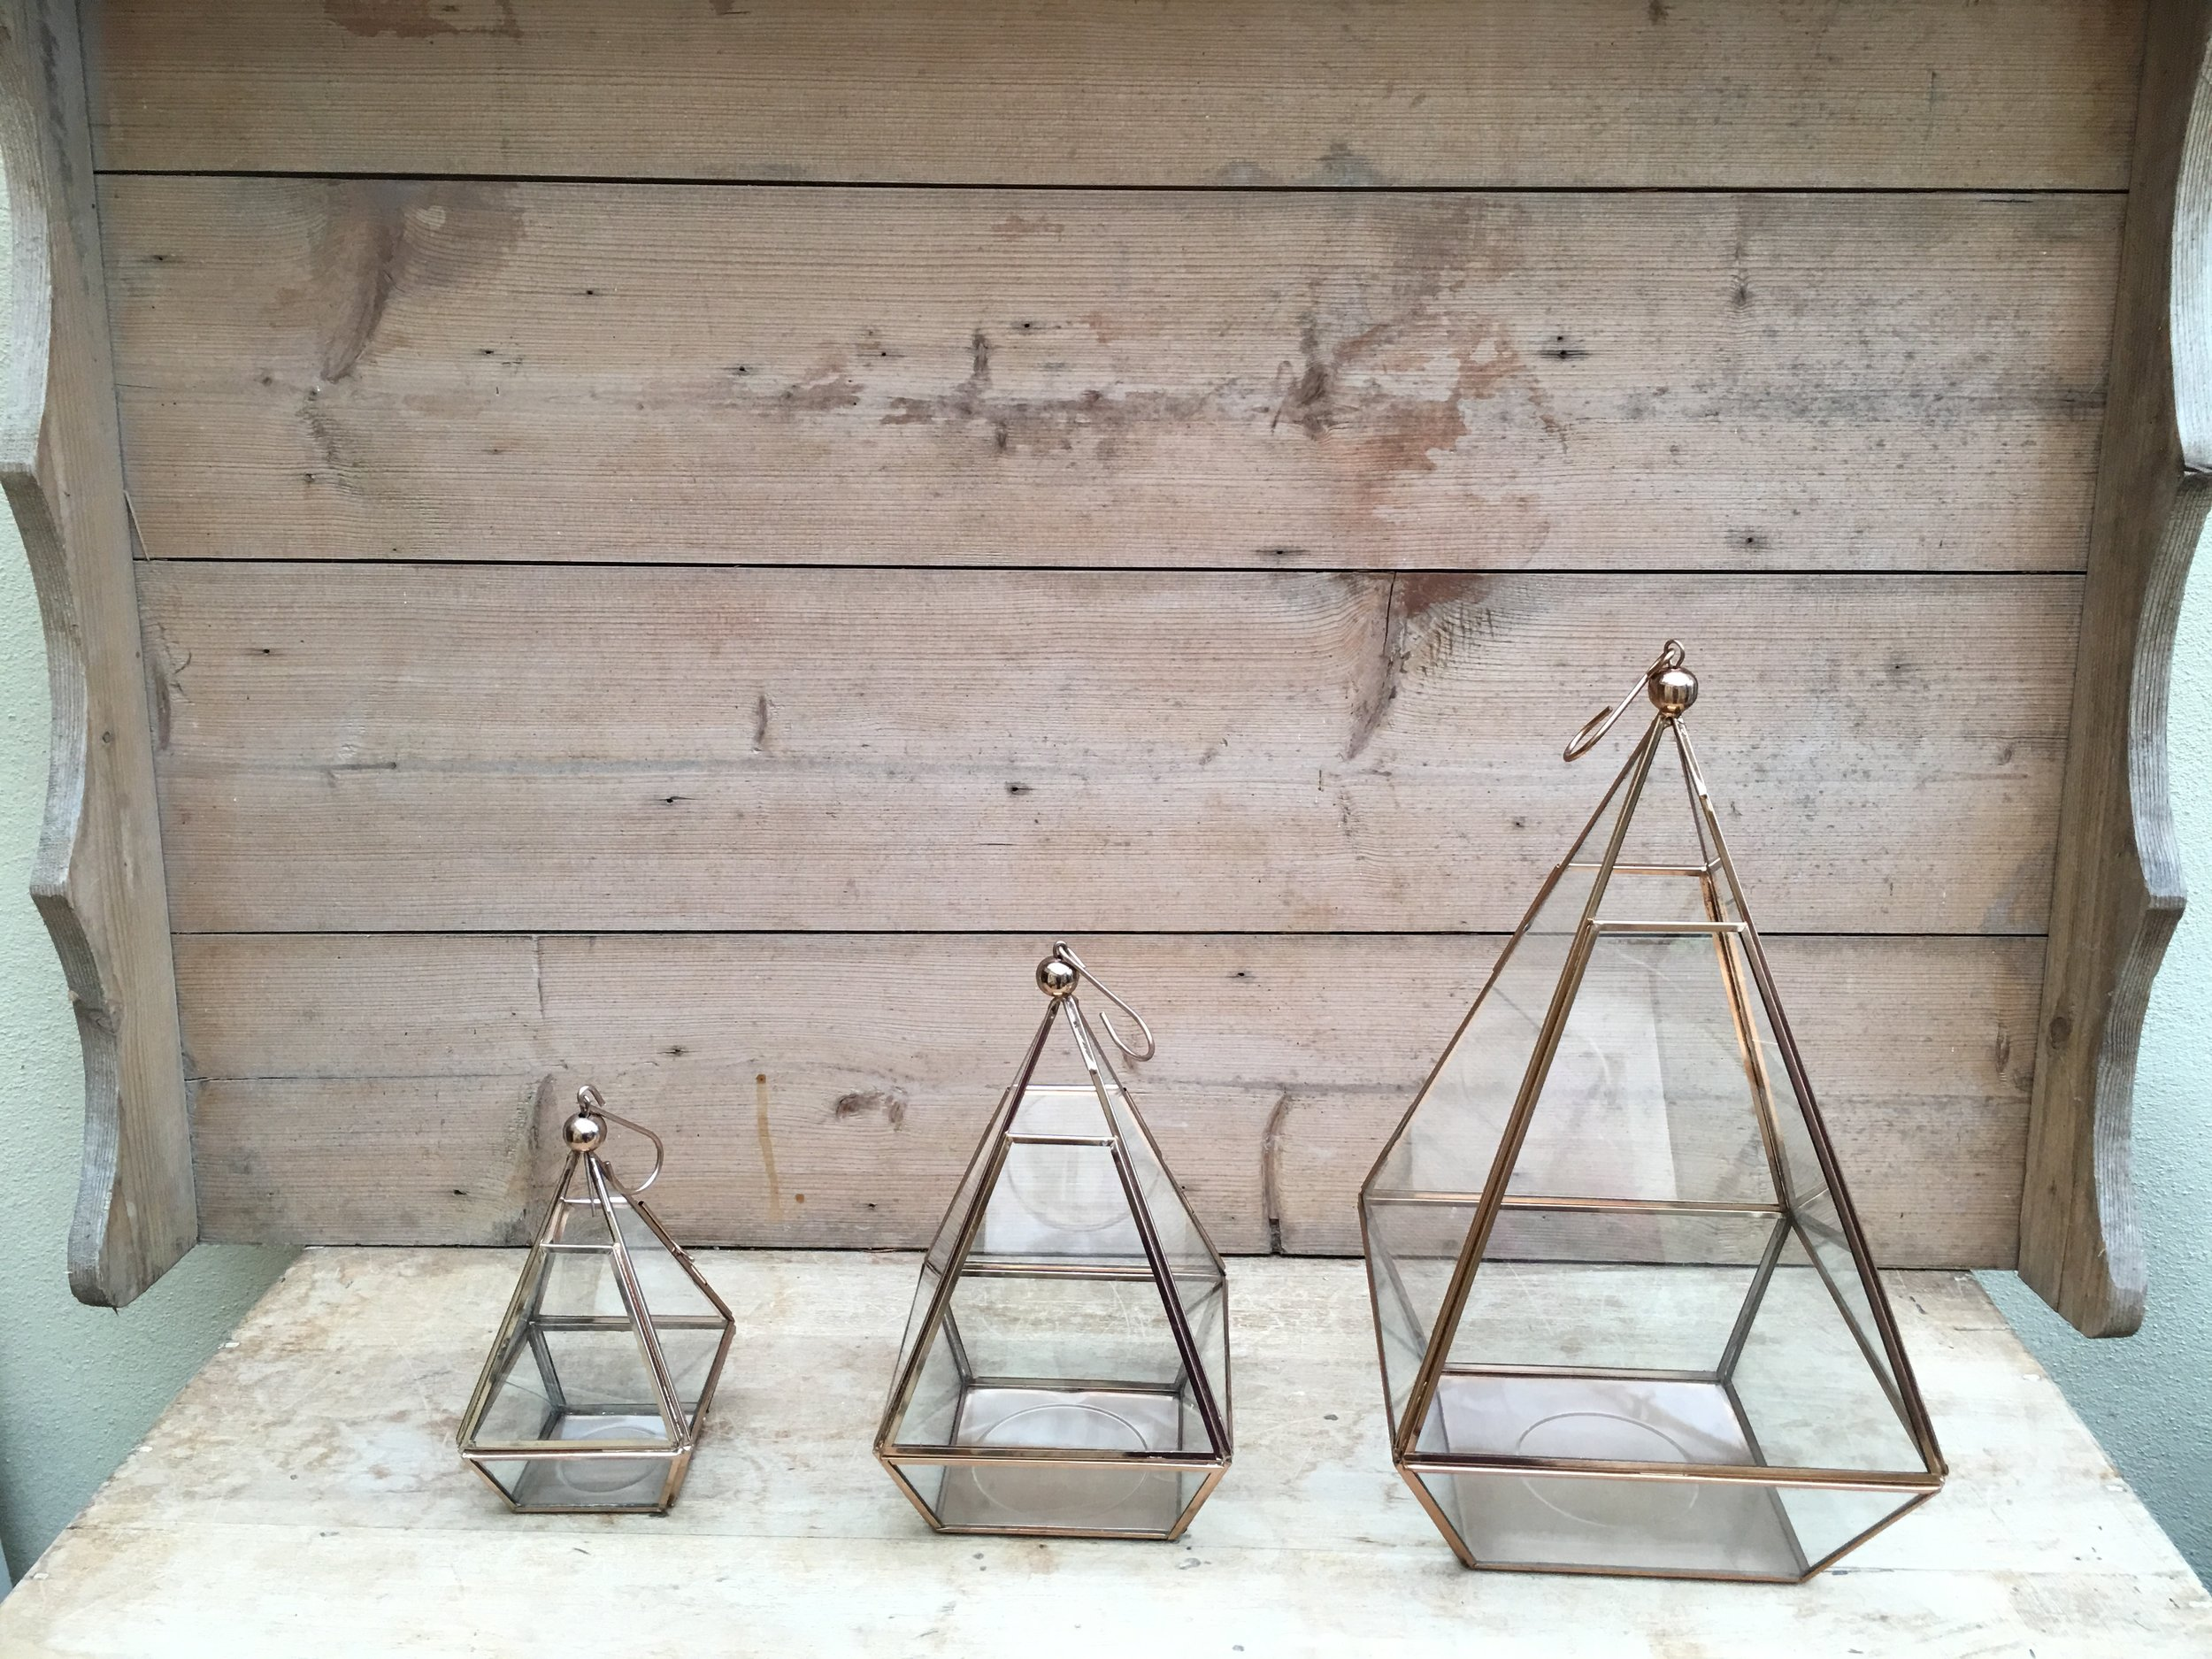 Geometric terrariums - Small £4 each  - 8 number total  Medium £6 each - 8 number total   Large £8 each - 4 number total